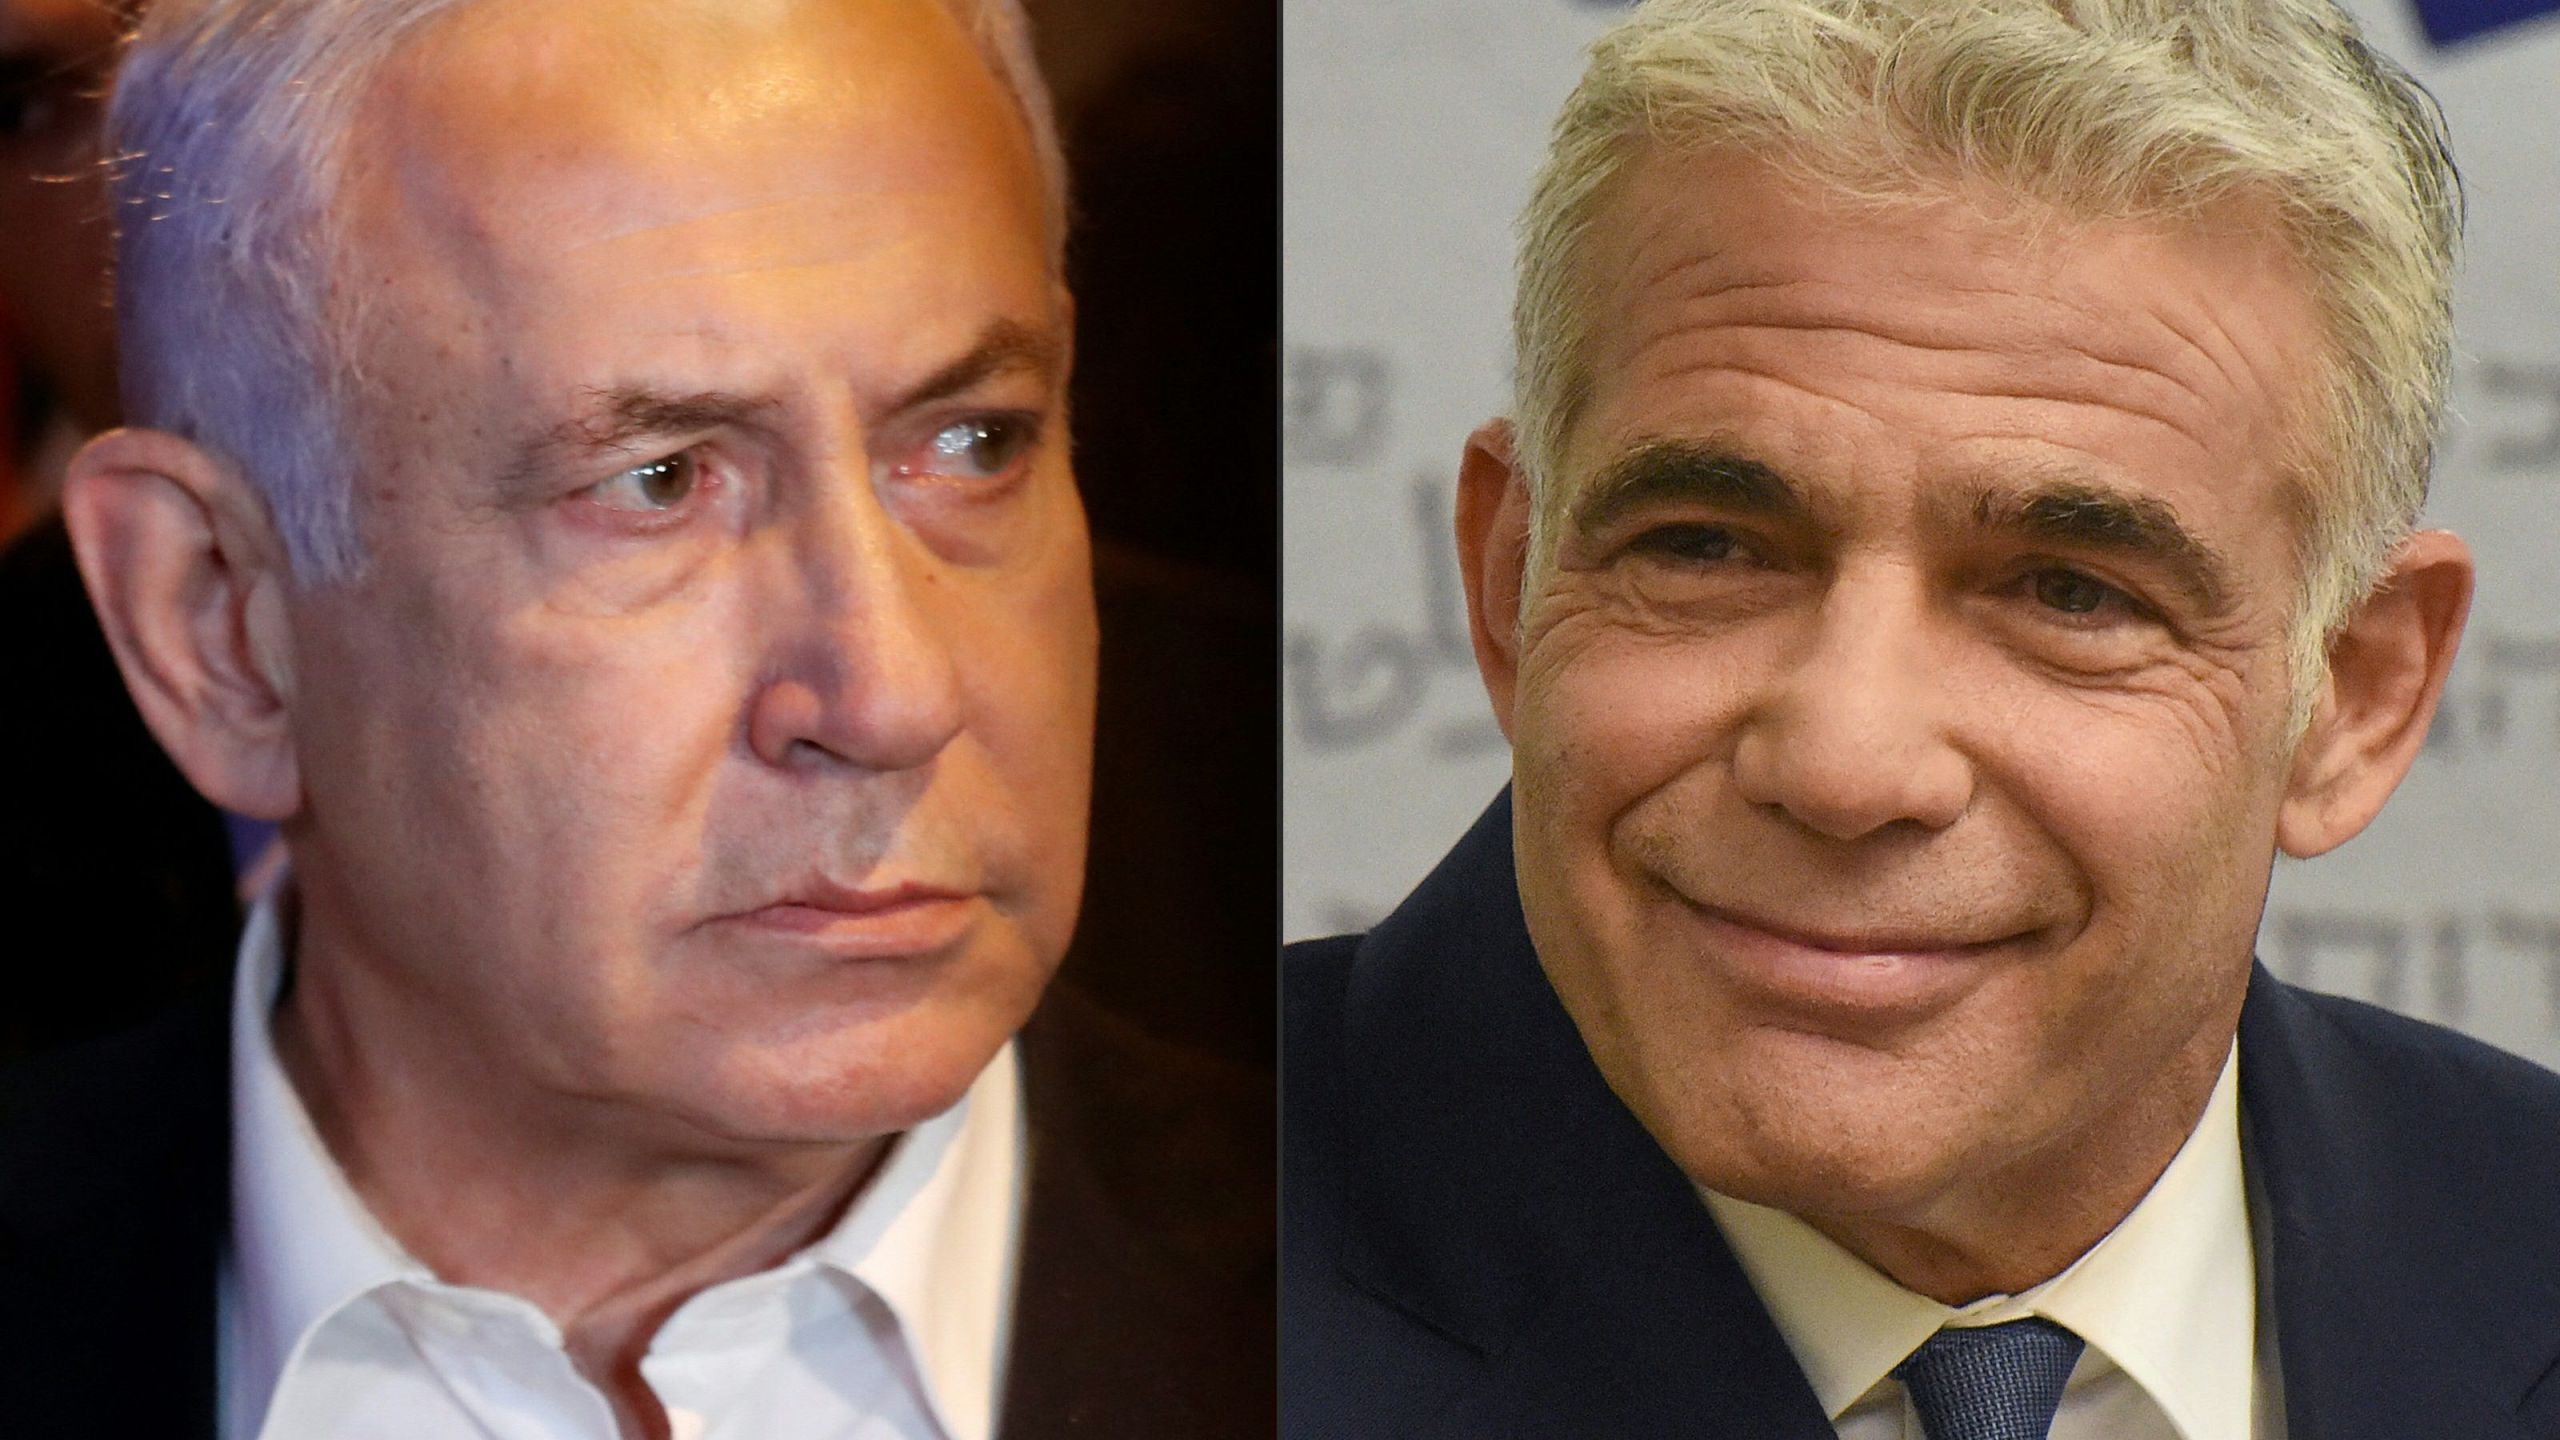 This combination of pictures created on June 2, 2021 shows Israeli Prime Minister Benjamin Netanyahu in the city of Lod early on May 12, 2021 and Israel's centrist opposition leader Yair Lapid at the Knesset in Jerusalem on May 31, 2021. (AHMAD GHARABLI,DEBBIE HILL/POOL/AFP via Getty Images)